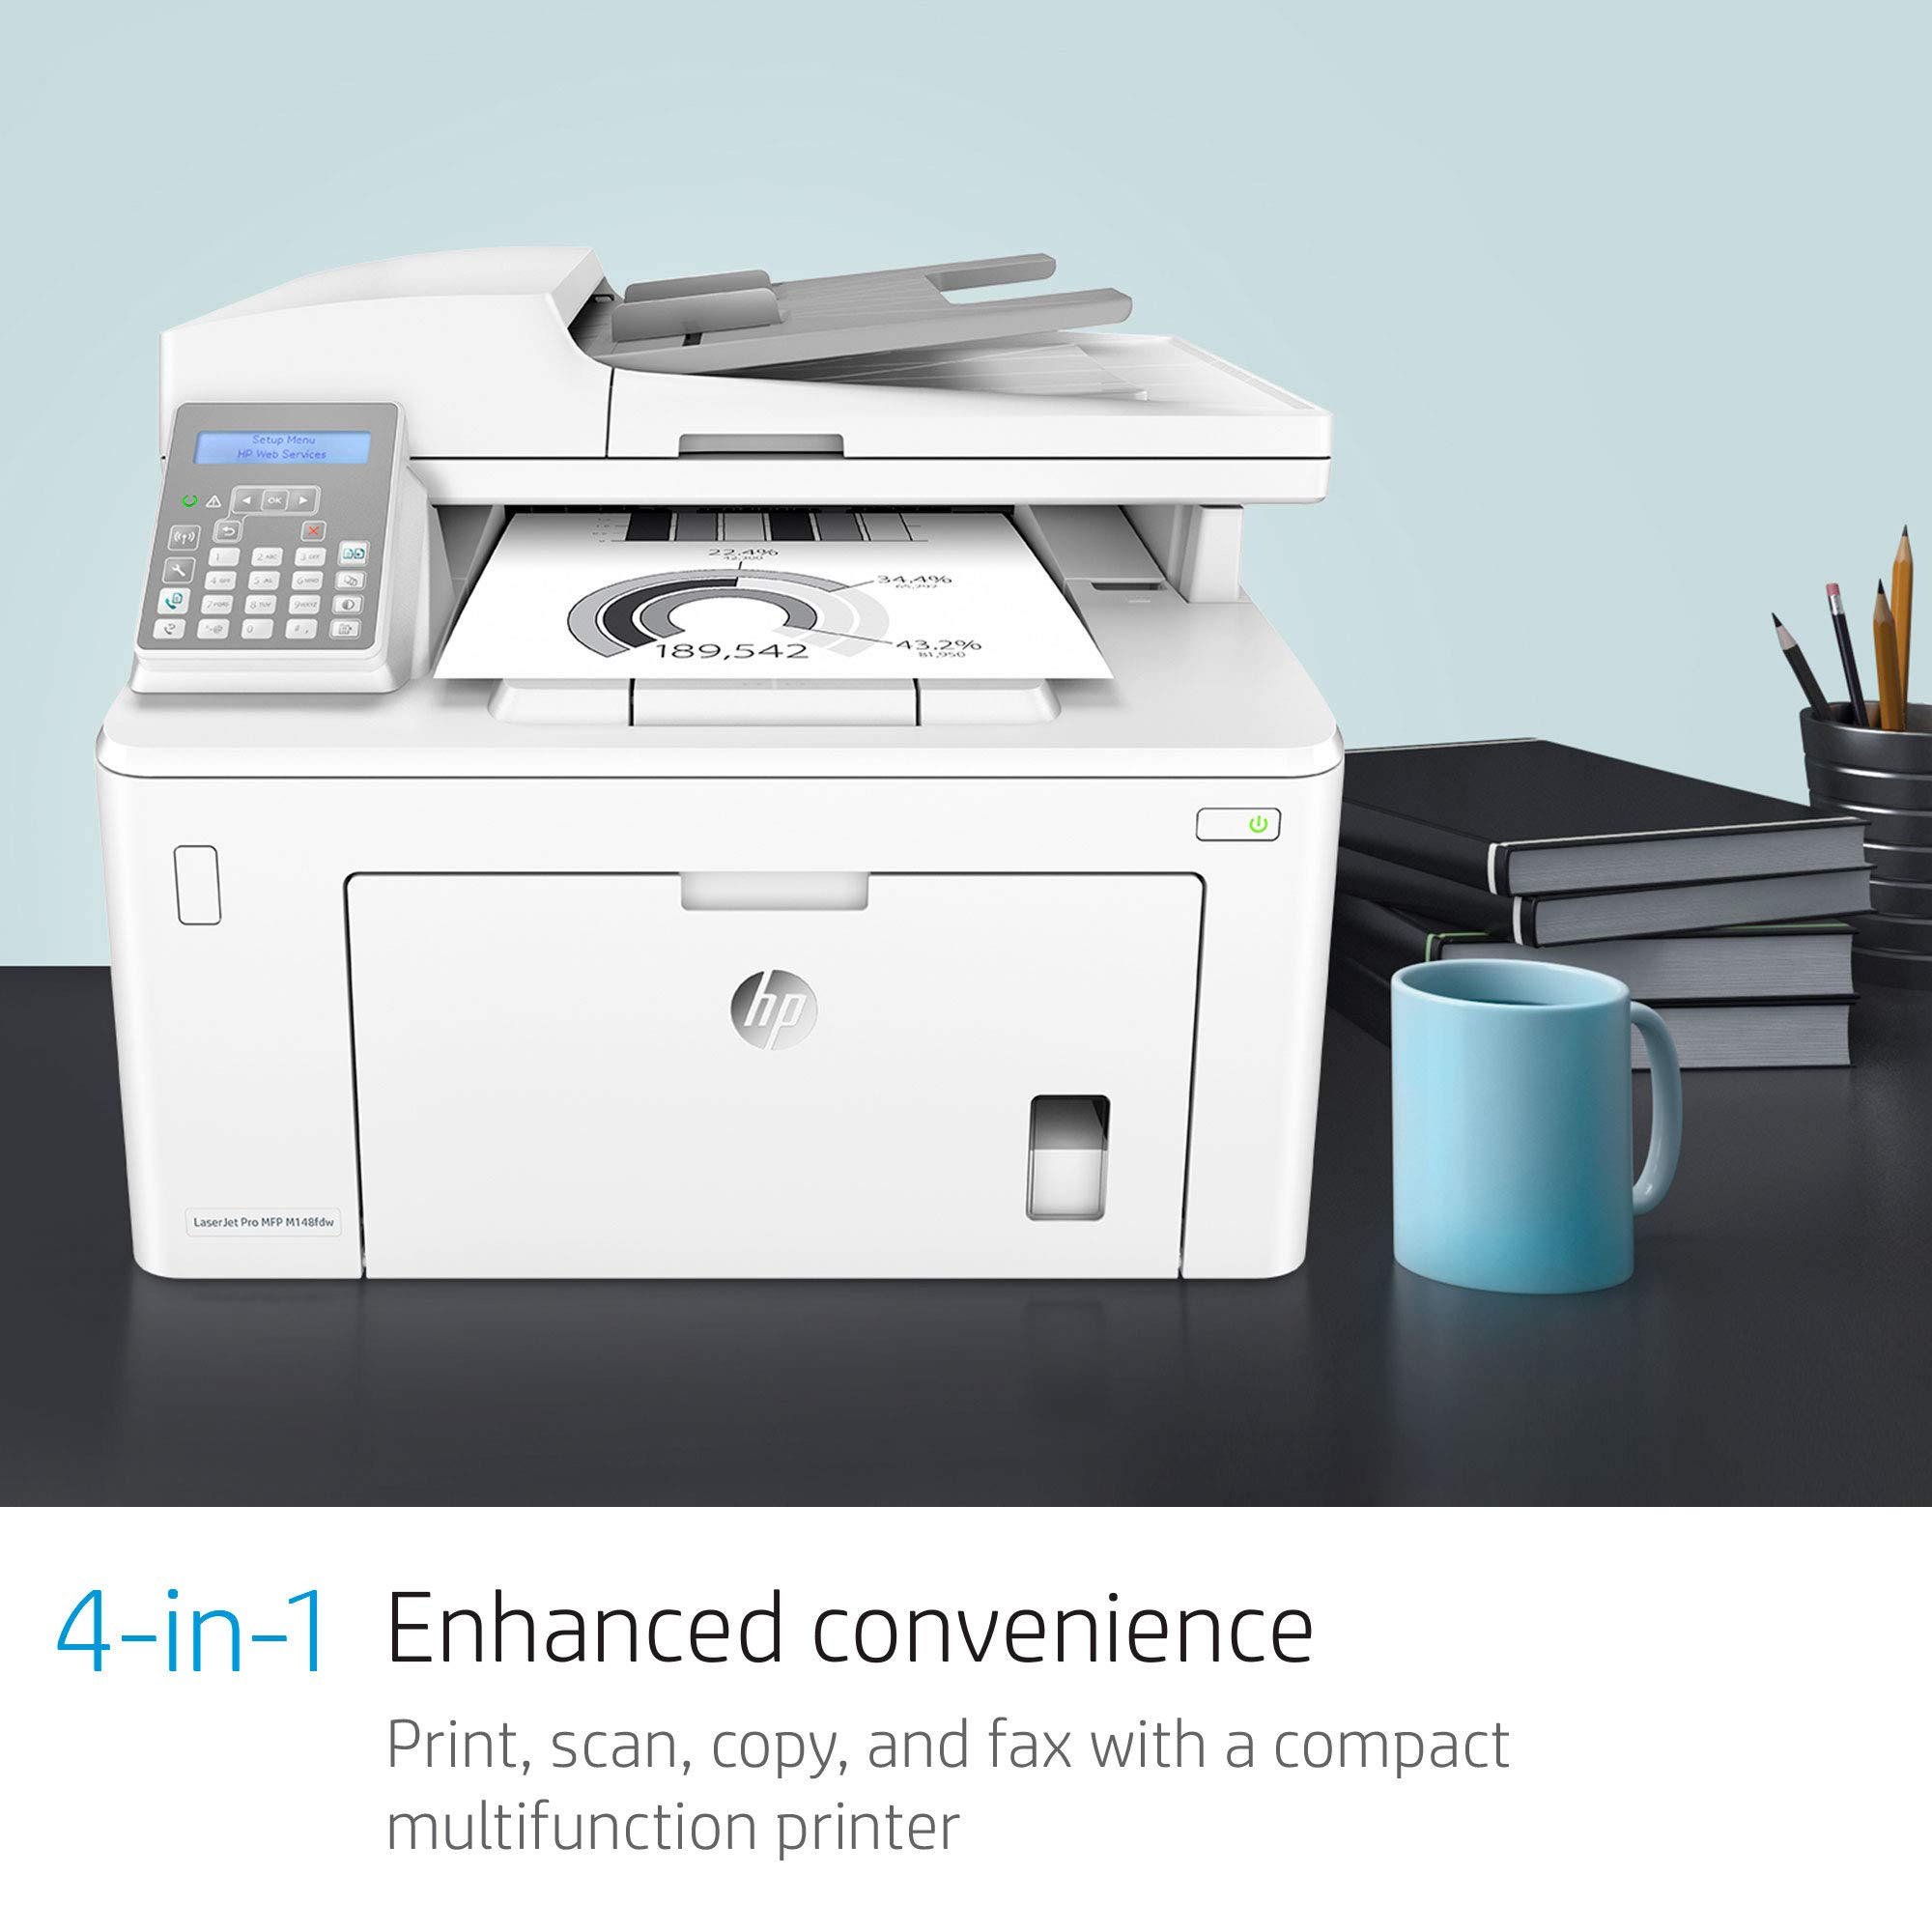 HP Laserjet Pro M148fdw All-in-One Wireless Monochrome Laser Printer with Auto Two-Sided Printing, Mobile Printing, Fax & Built-in Ethernet (4PA42A) by HP (Image #5)